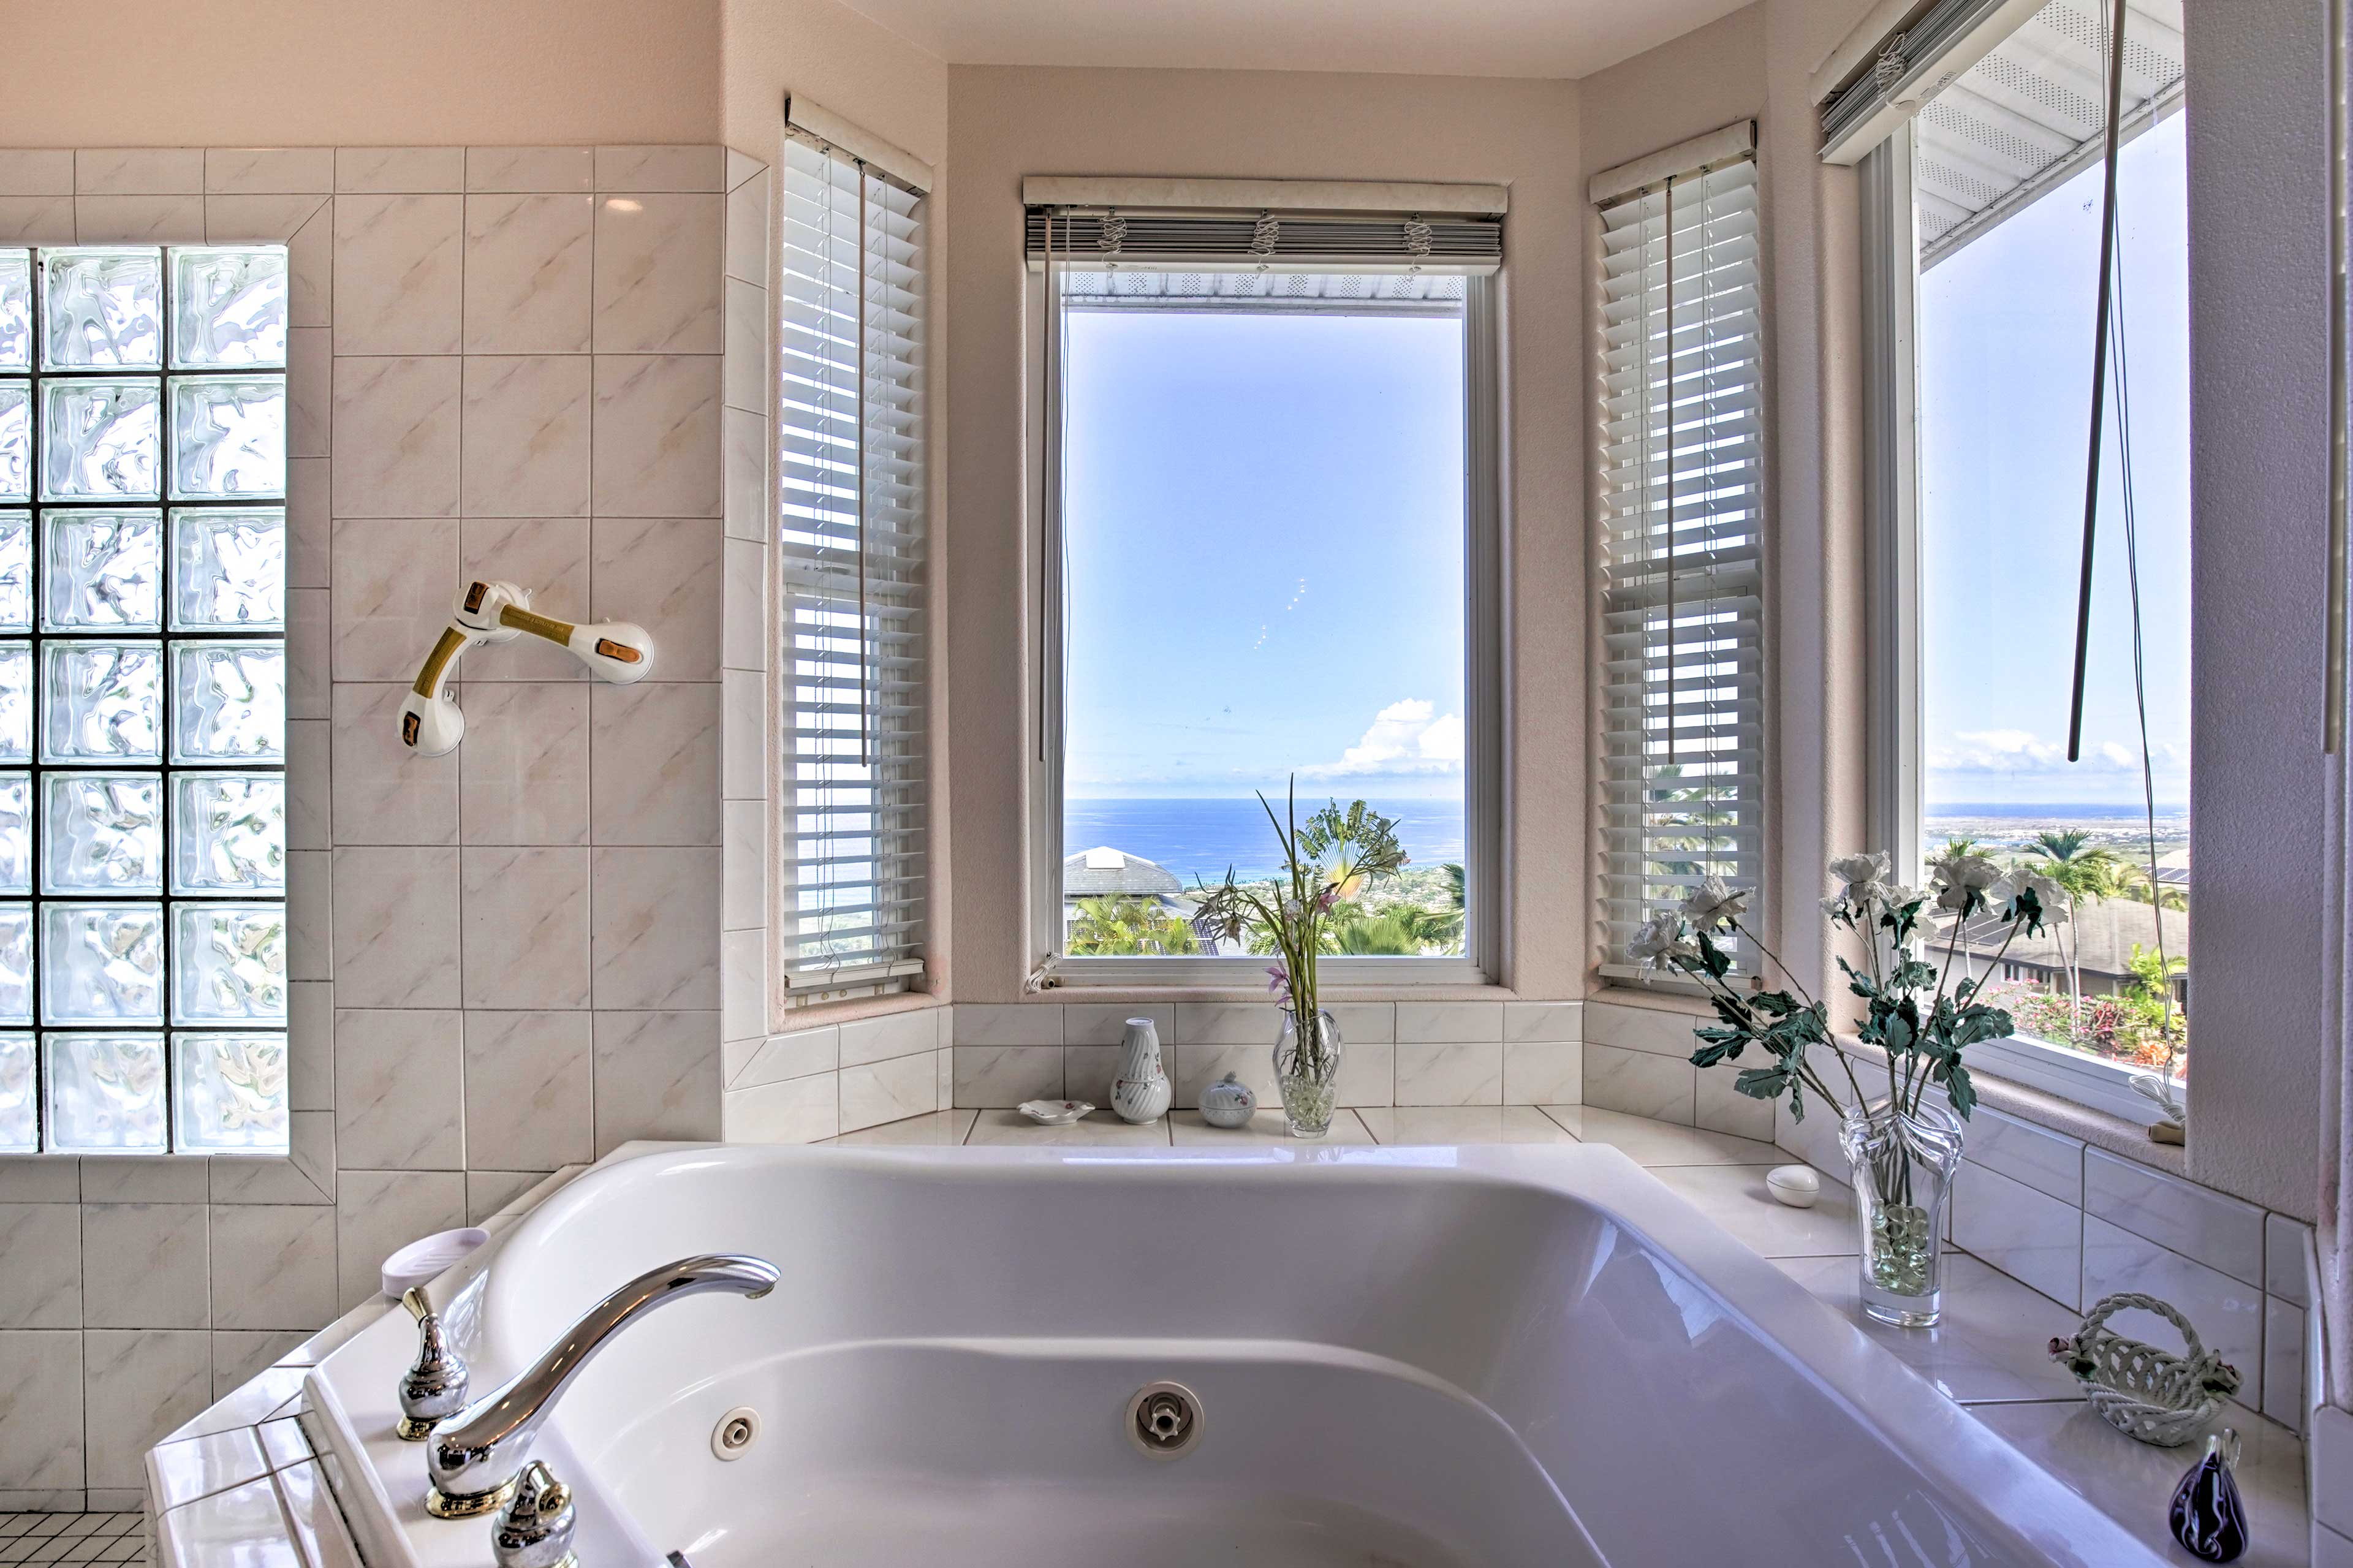 Unwind with a bubble bath and sunset views over the water!